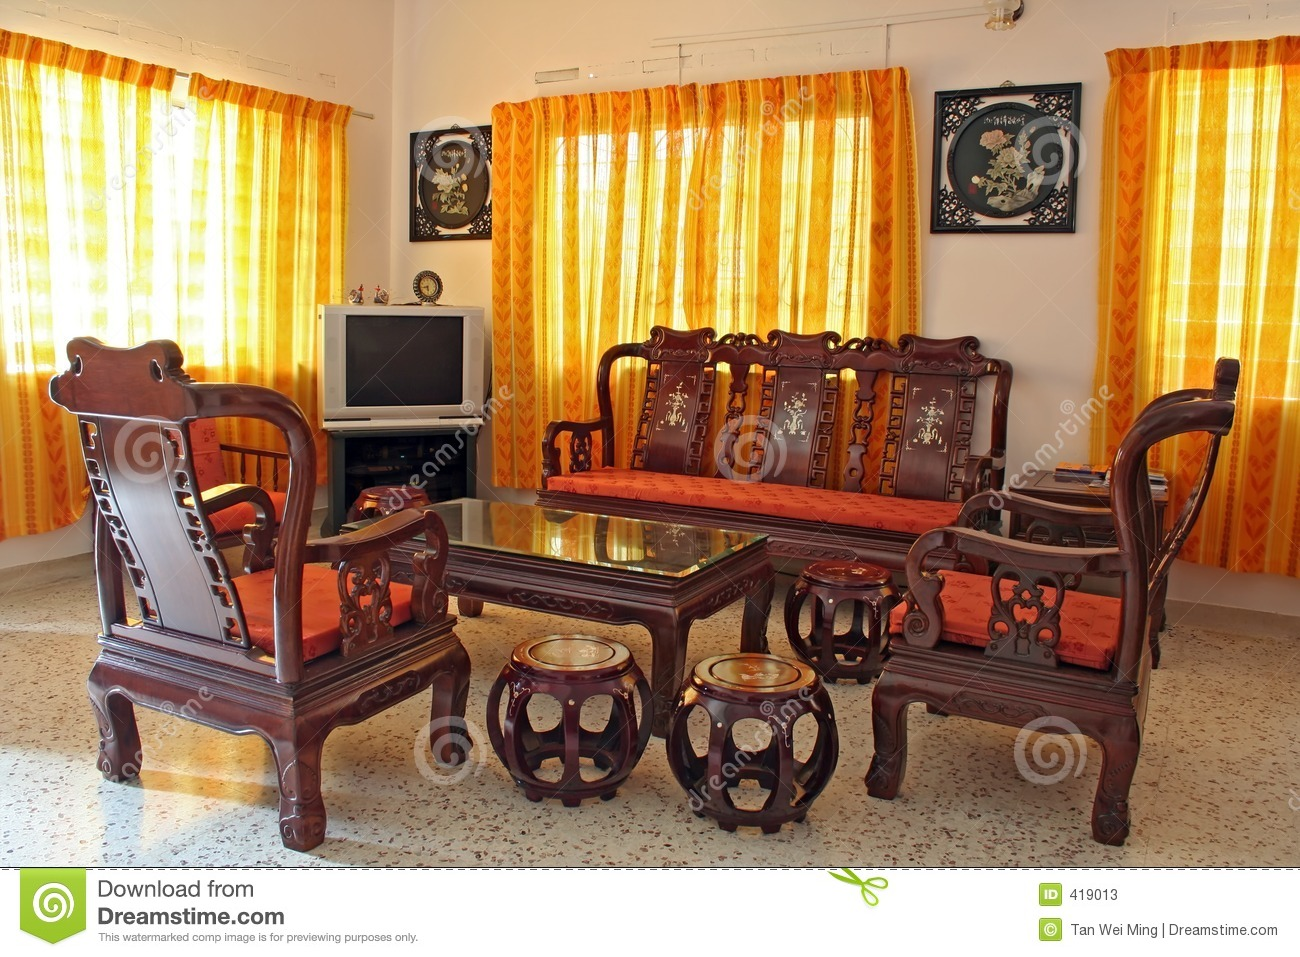 Antique Chinese Rosewood Furniture Stock Photos - Image: 419013